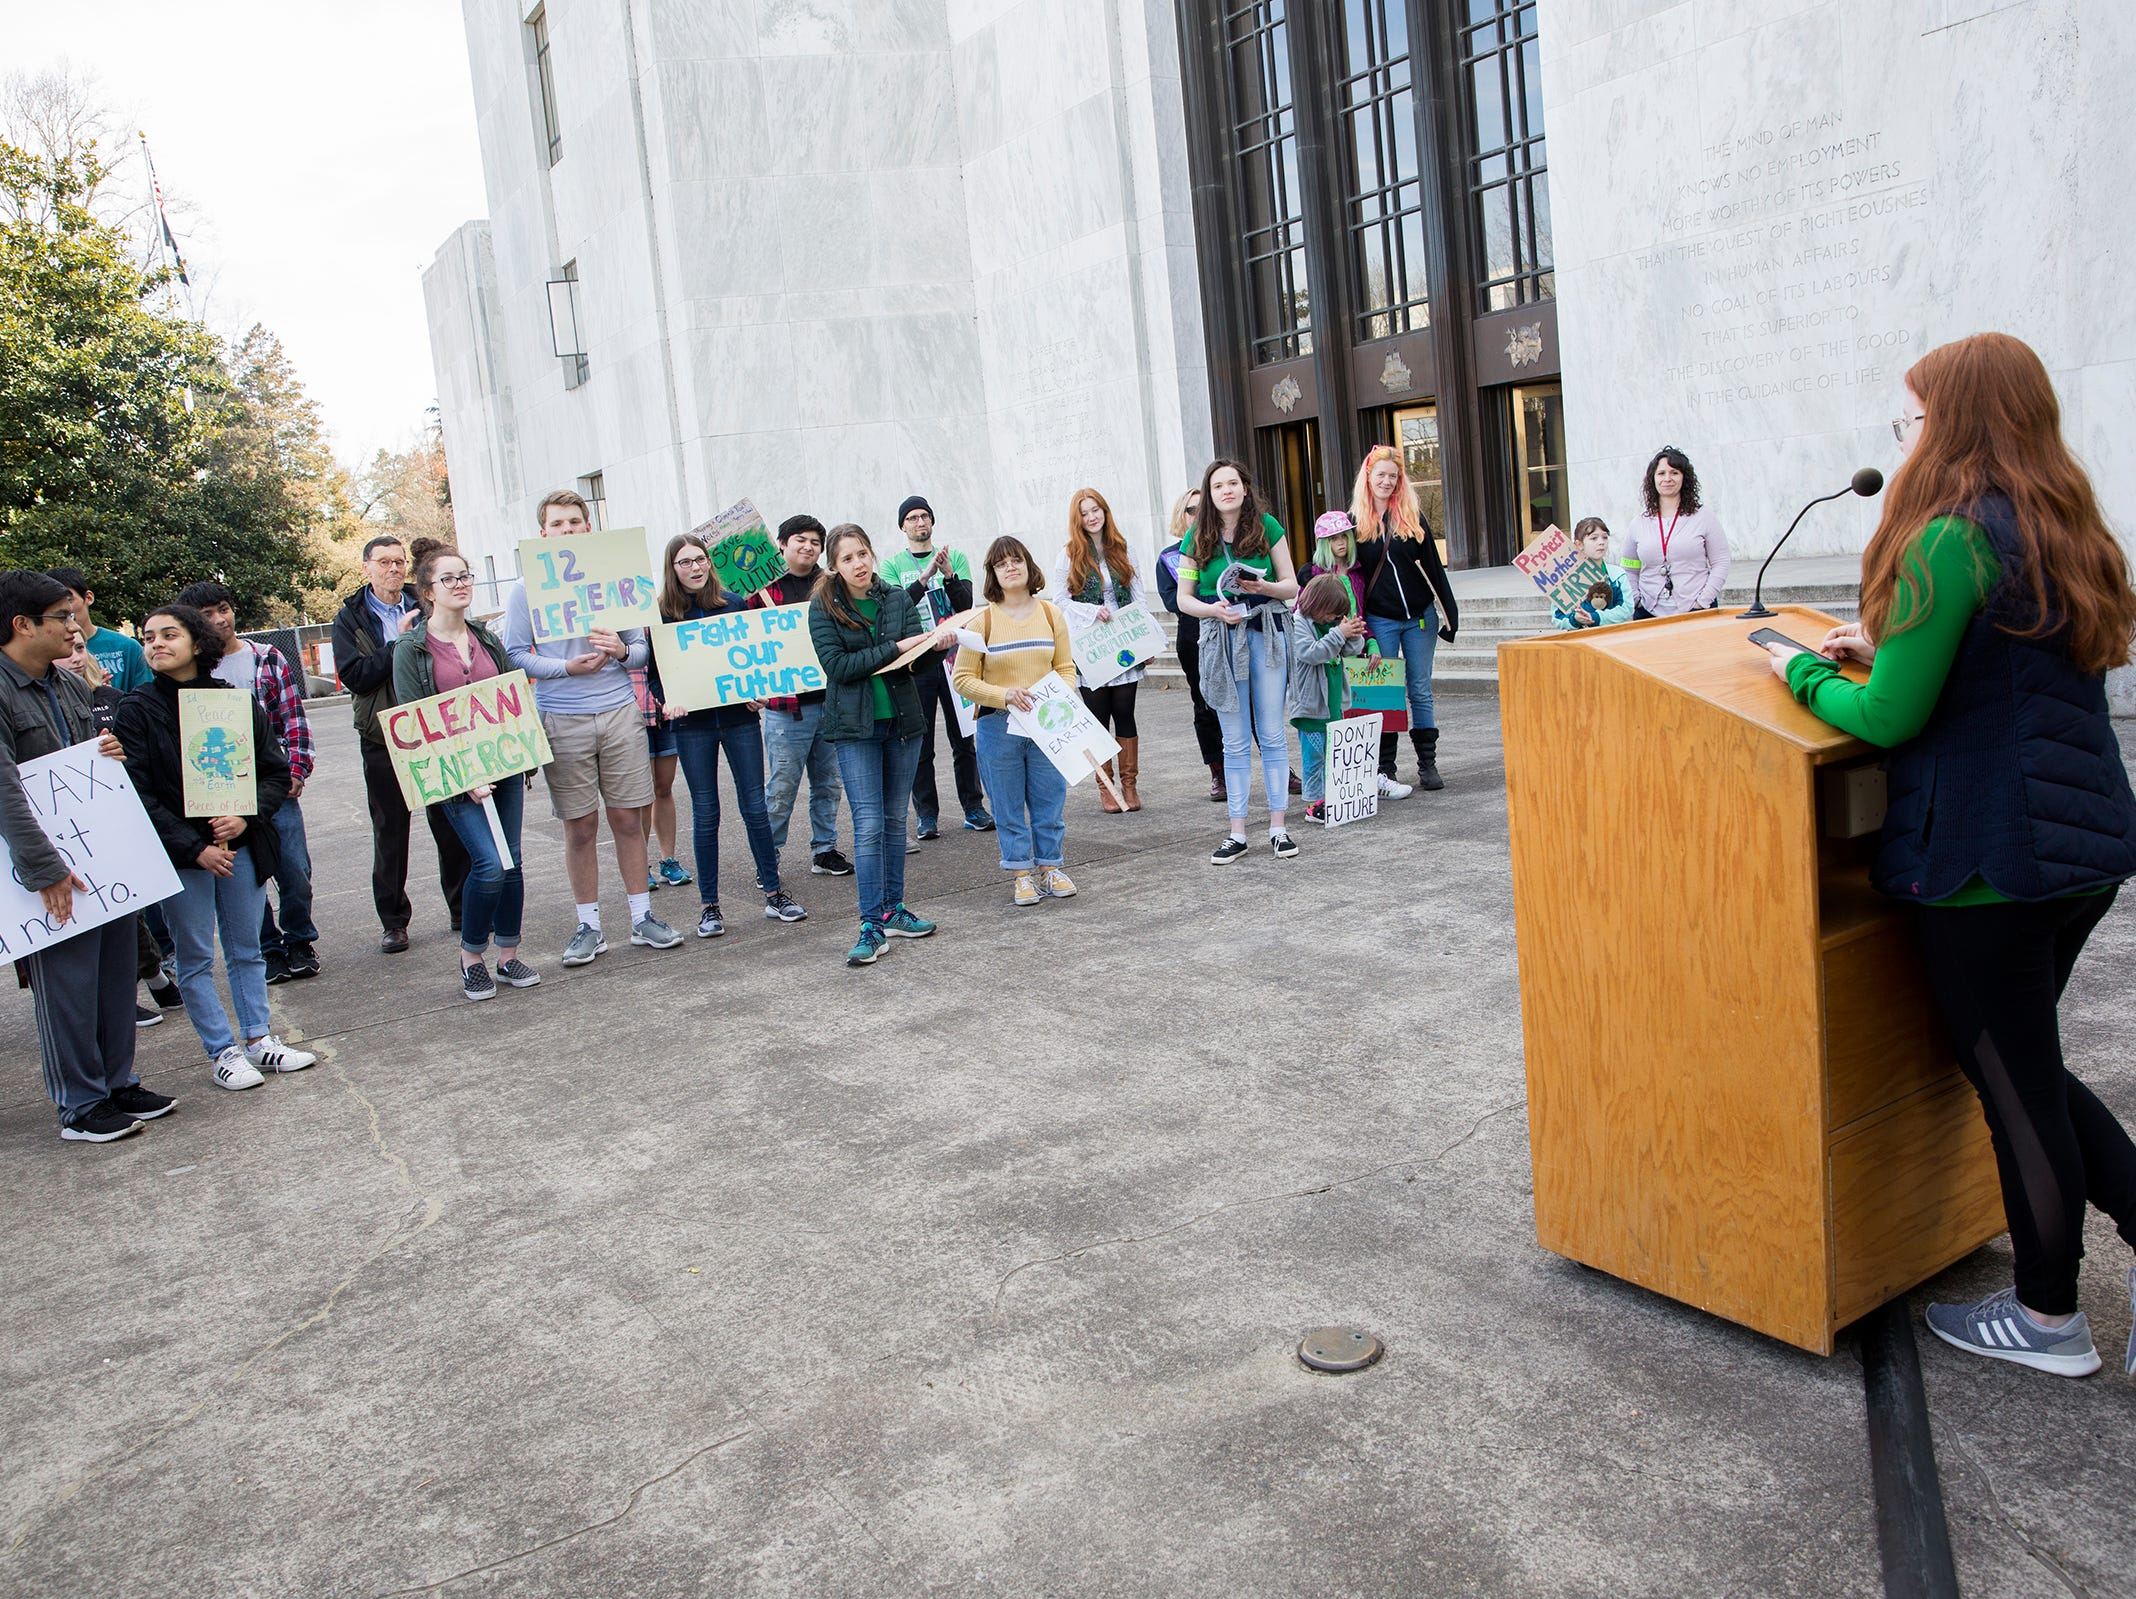 South Salem sophomore Eddy Binford-Ross, and student organizer of the rally, speaks to a crowd of around 30 in support of the Global Climate Strike and National Youth Climate Strike, at the Oregon State Capitol Building on March 15, 2019.